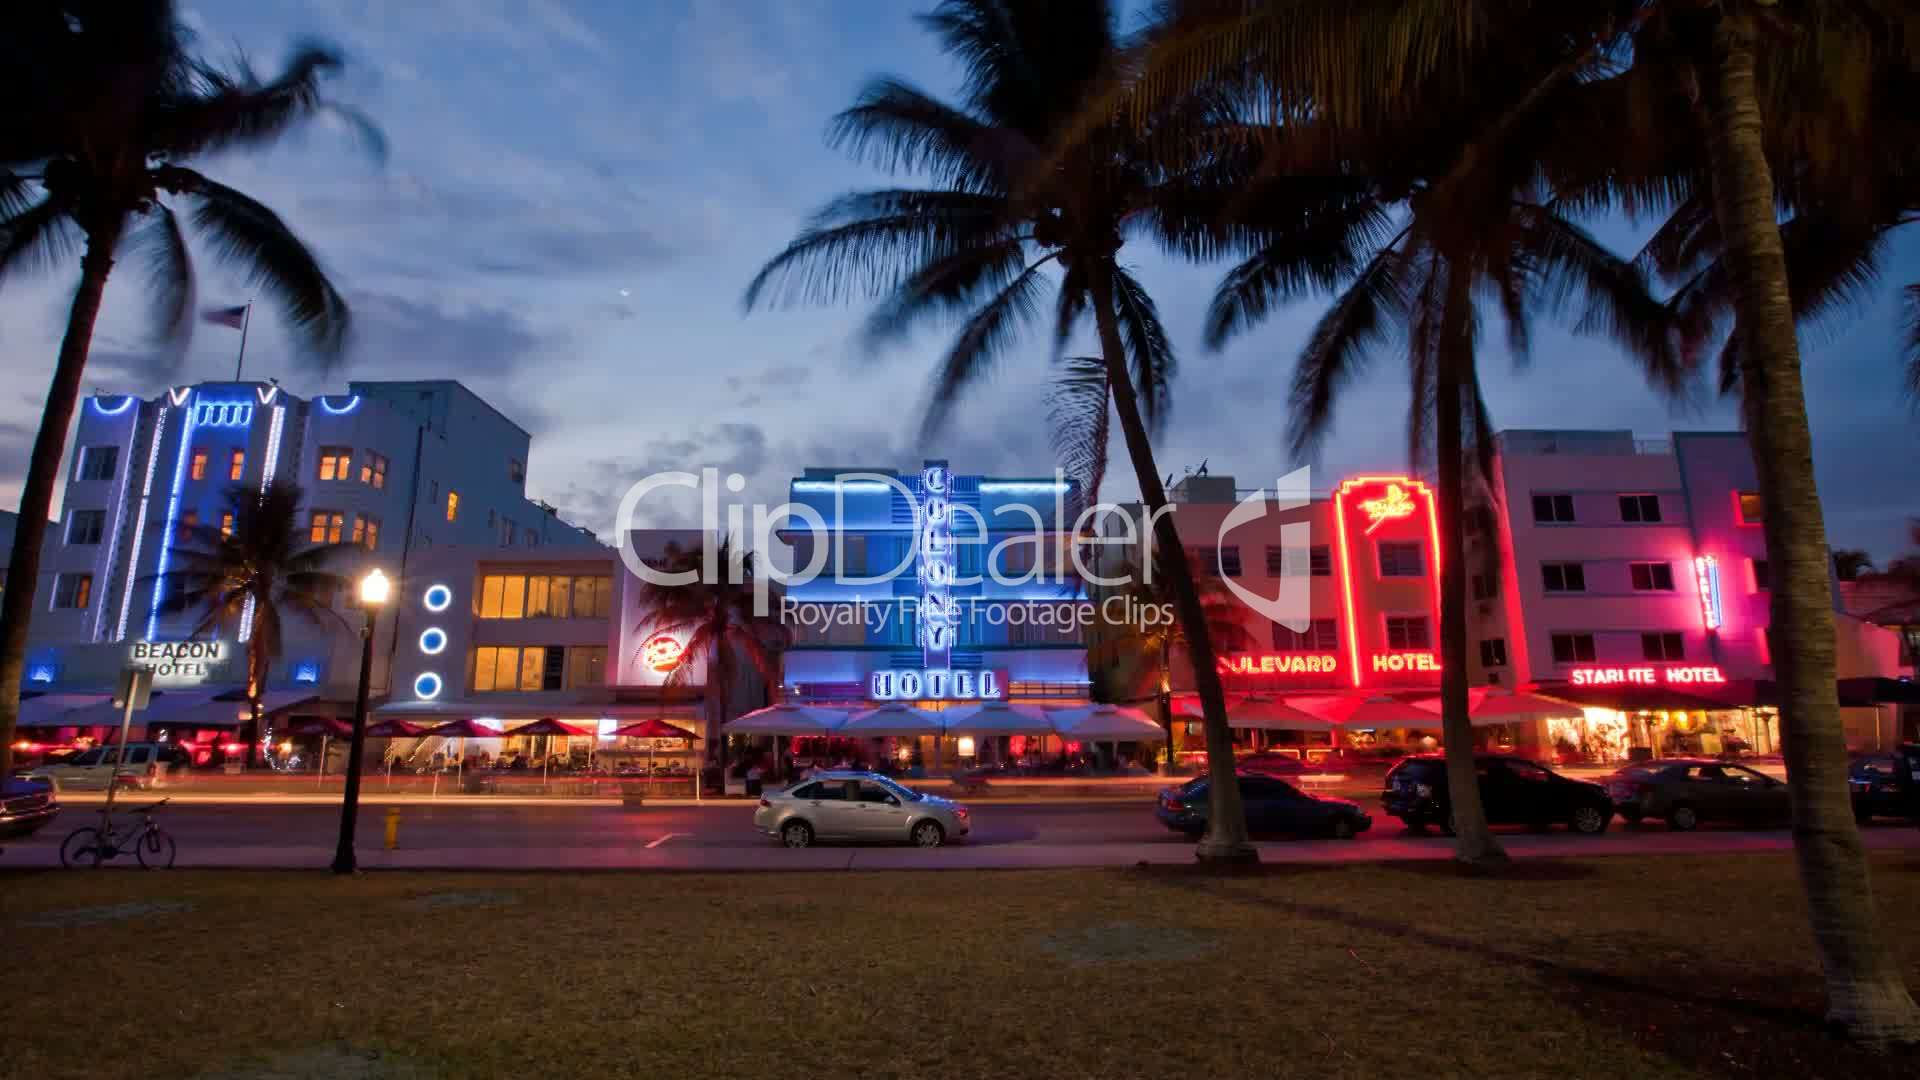 Florida Dealer License >> Miami Beach Ocean Drive Zeitraffer: Royalty-free video and stock footage